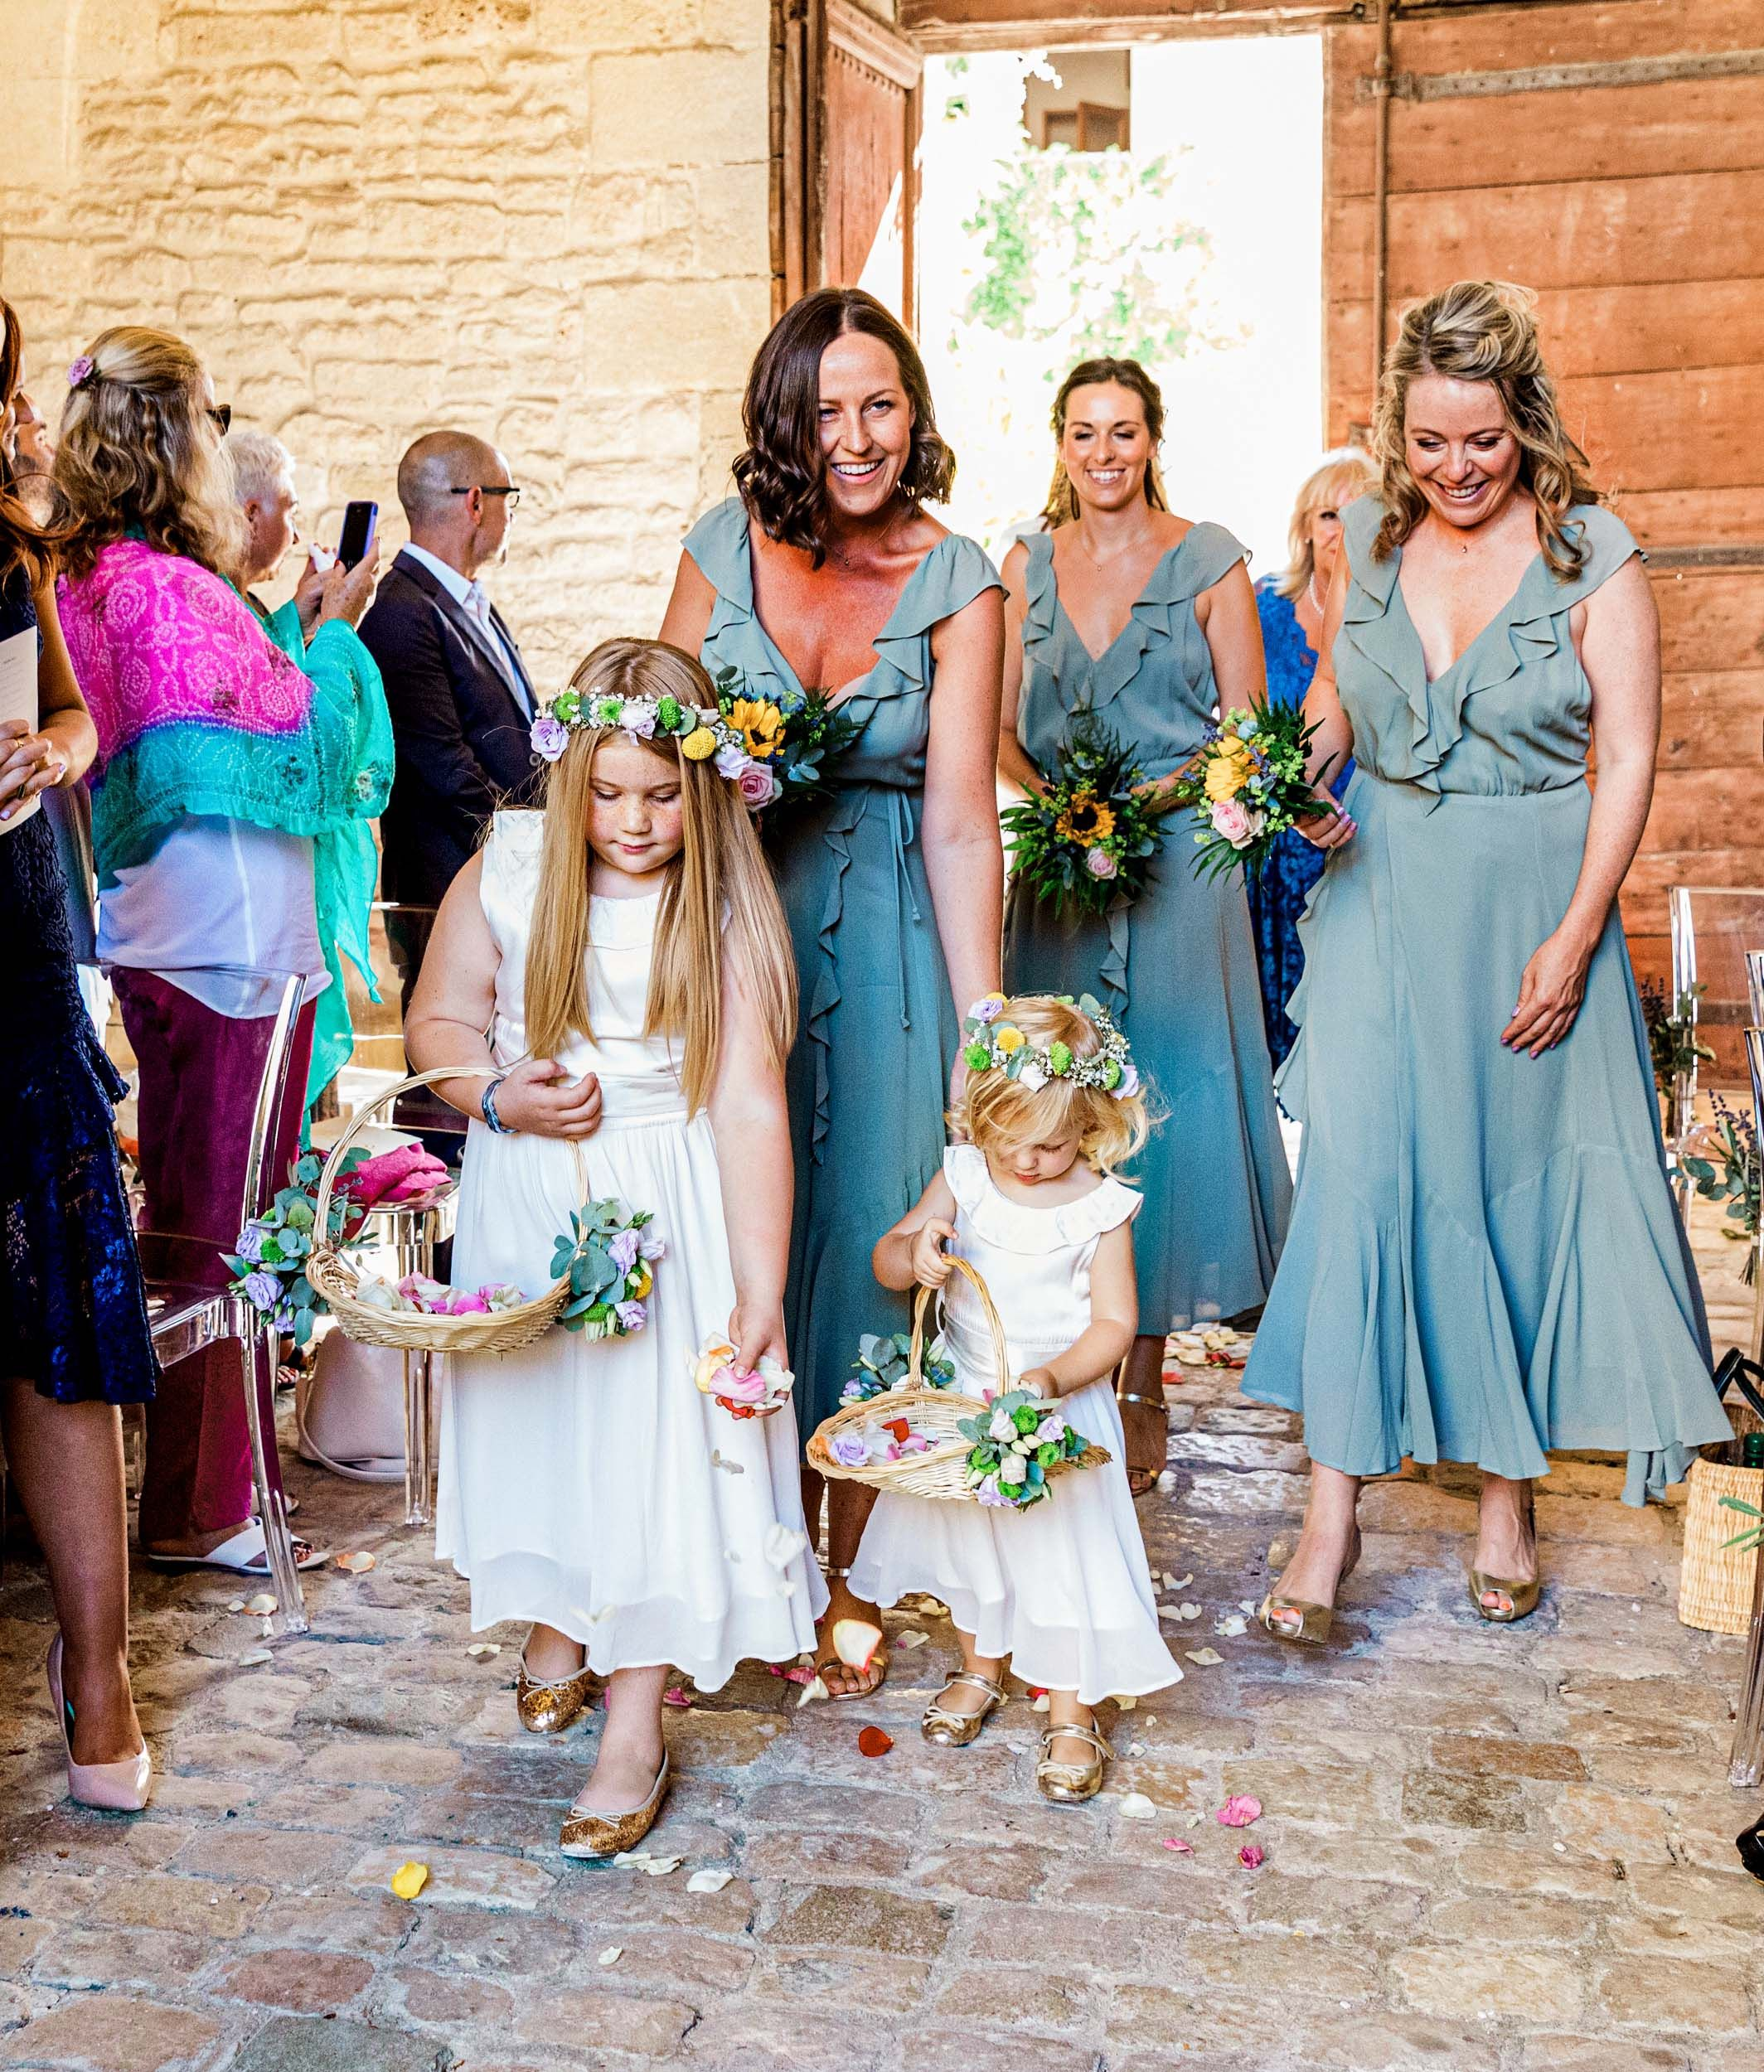 Wedding Phottographer South West France The Dordogne The Charente Relaxed And Informal French Wedding Wedding Photographers French Chateau Wedding